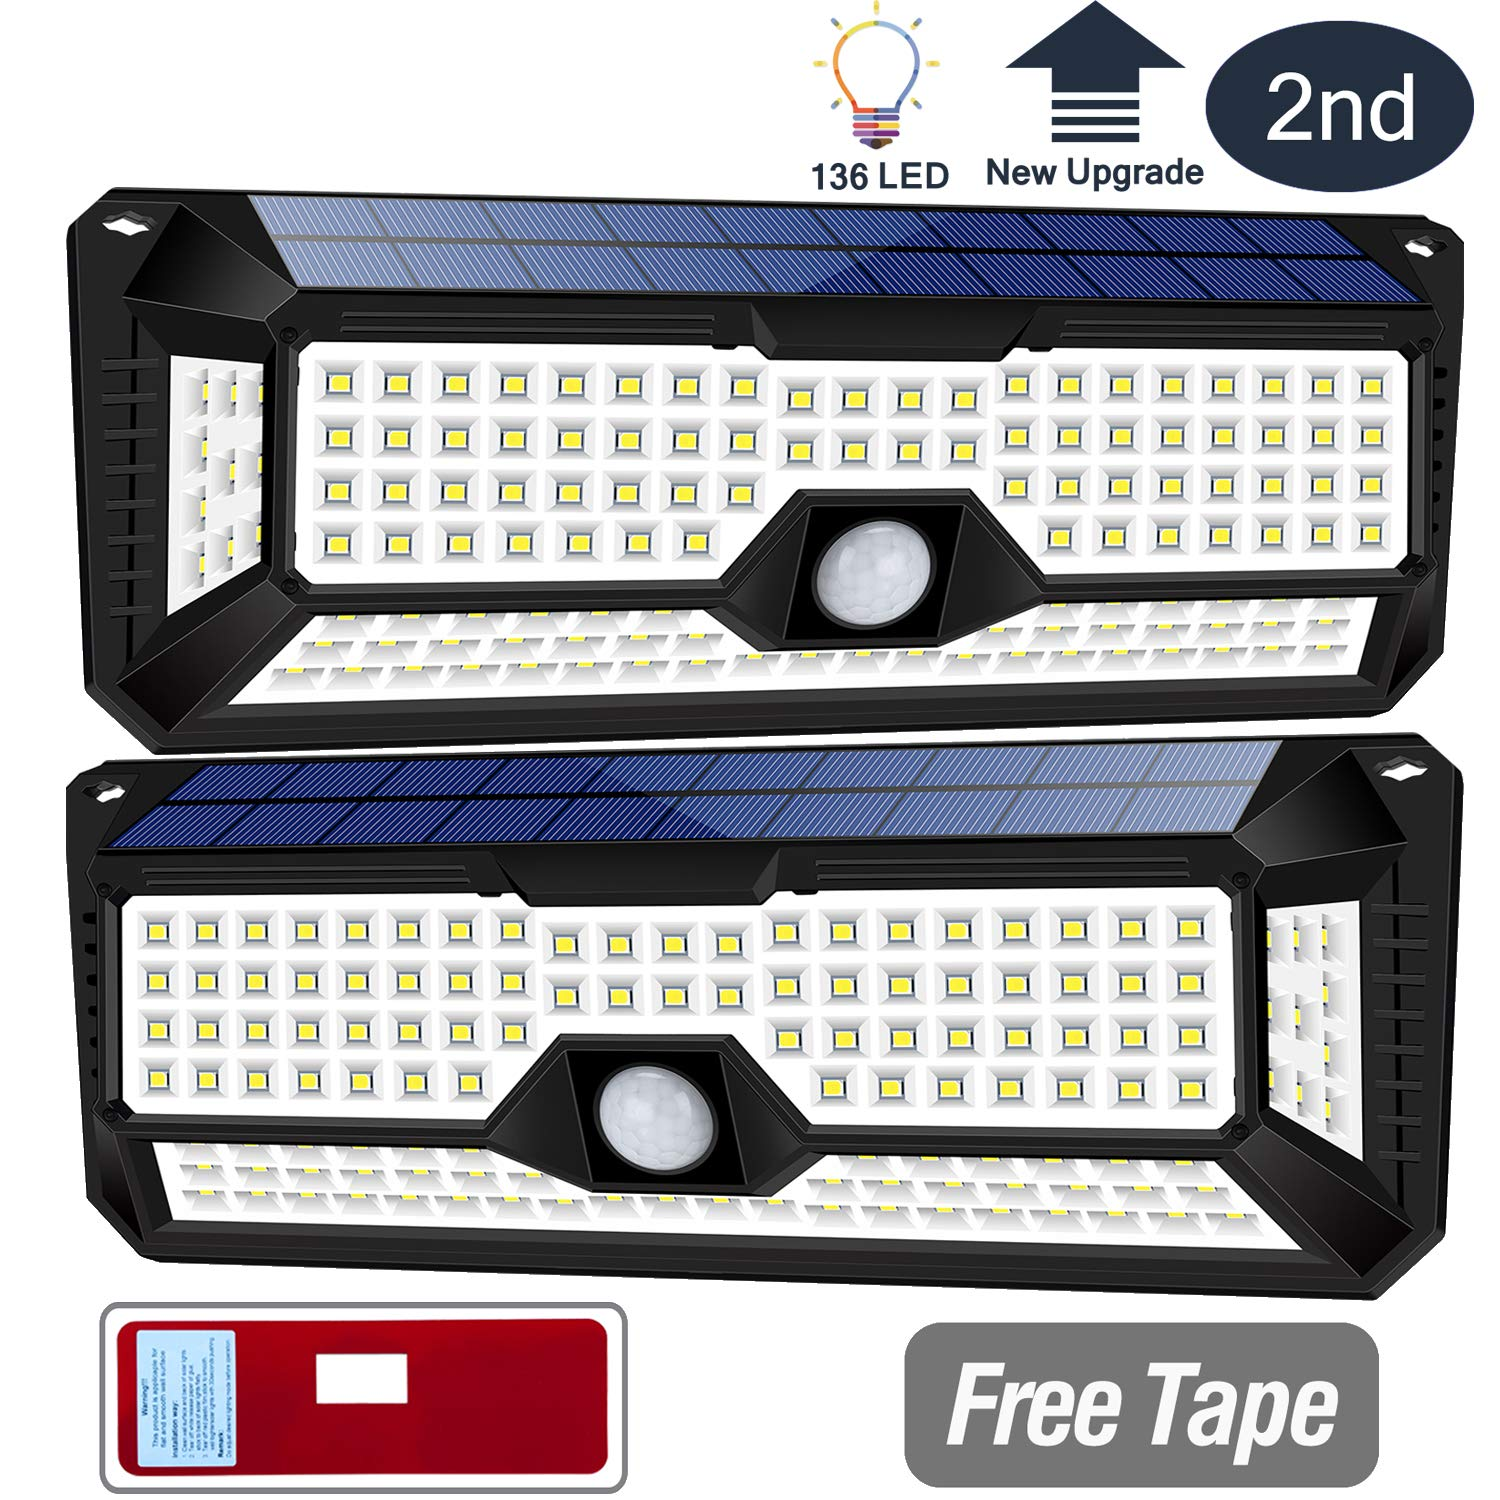 Solar Lights Outdoor, Wireless 136LED Lights of 4 Sides with Wide Lighting Area,Super Bright,Easy Installation ,Waterproof Security Lights for Front Door, Garden, Patio,Yard(2 Pack)